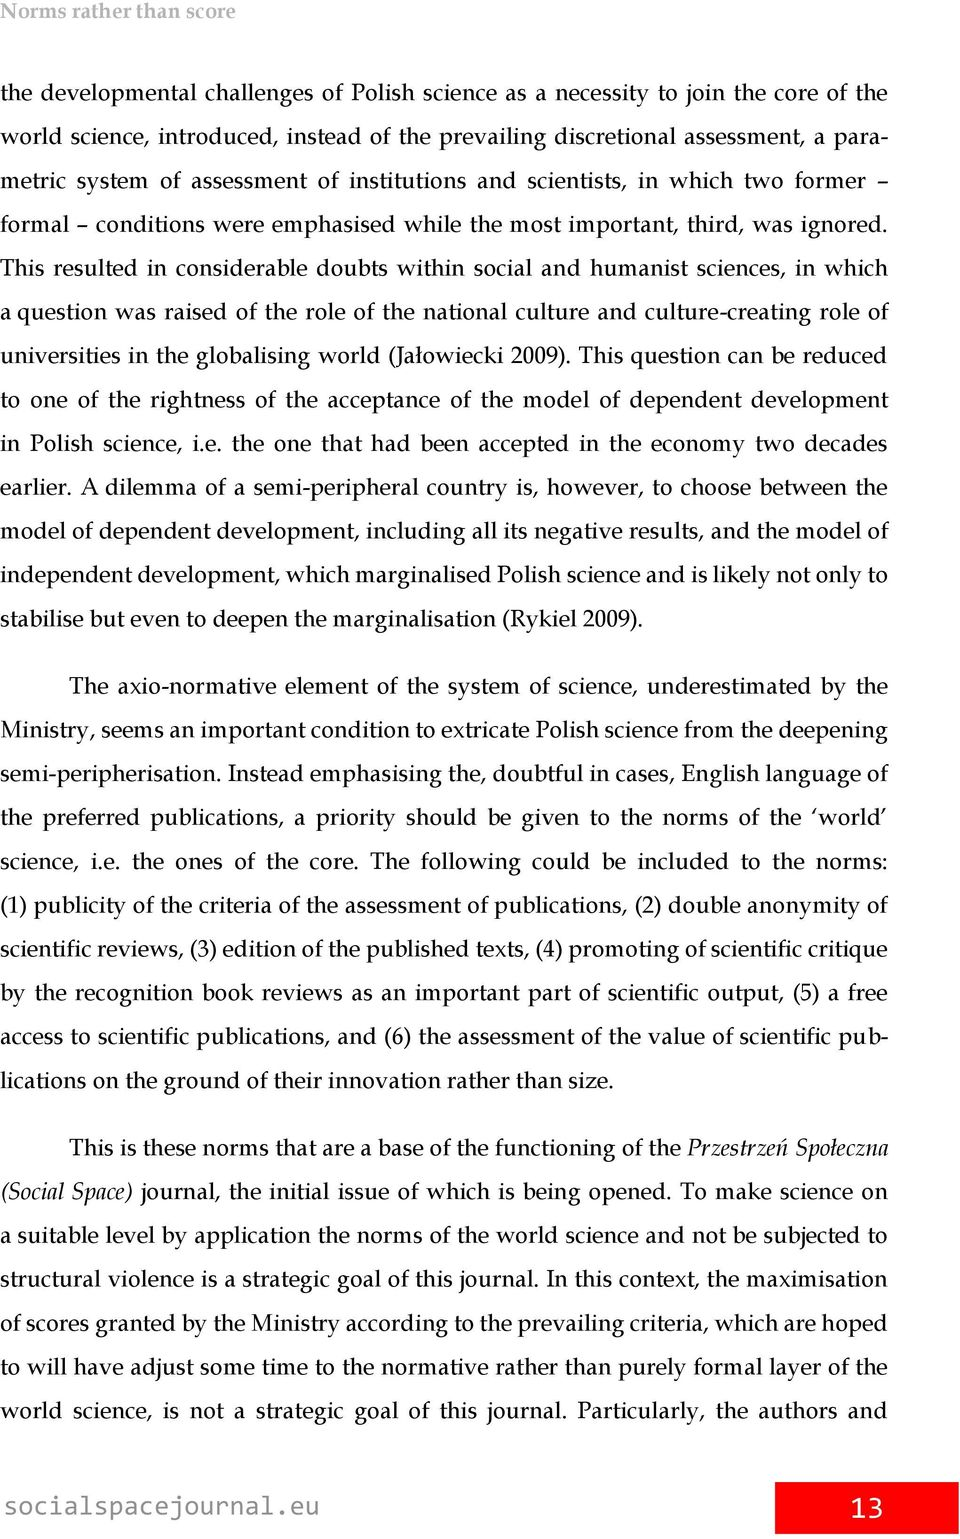 This resulted in considerable doubts within social and humanist sciences, in which a question was raised of the role of the national culture and culture-creating role of universities in the